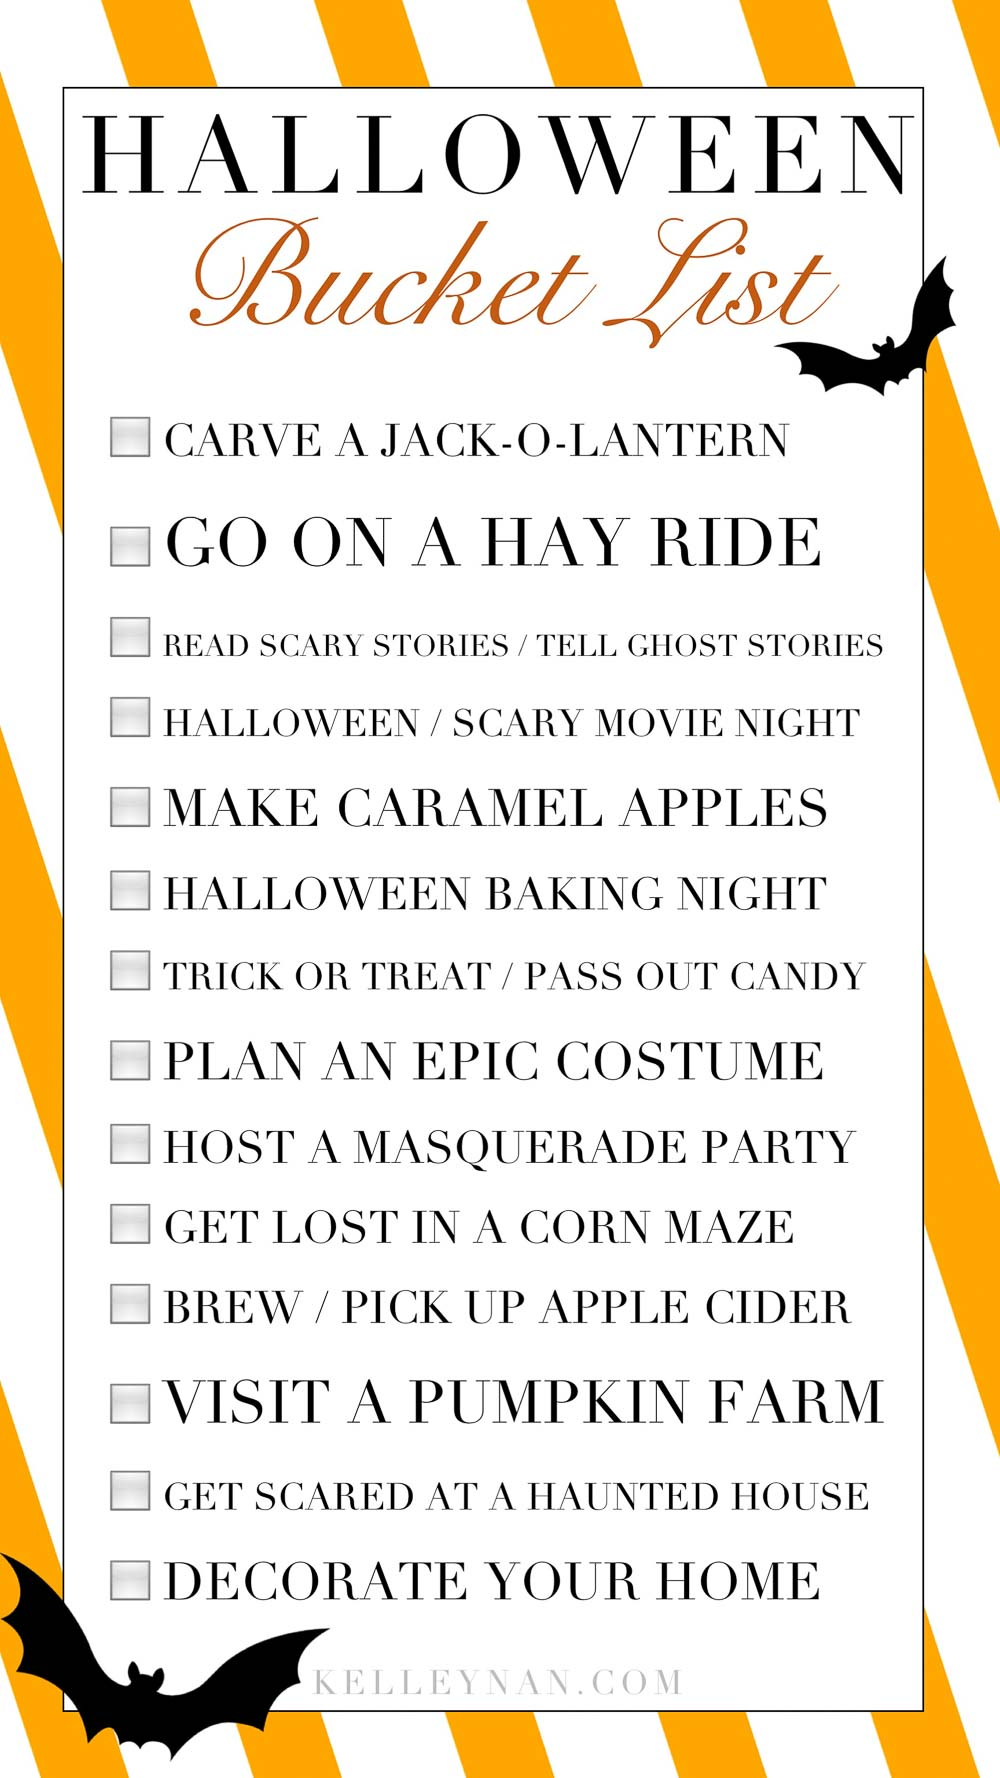 14 Halloween Family Activities and a Halloween Bucket List to Tackle this October